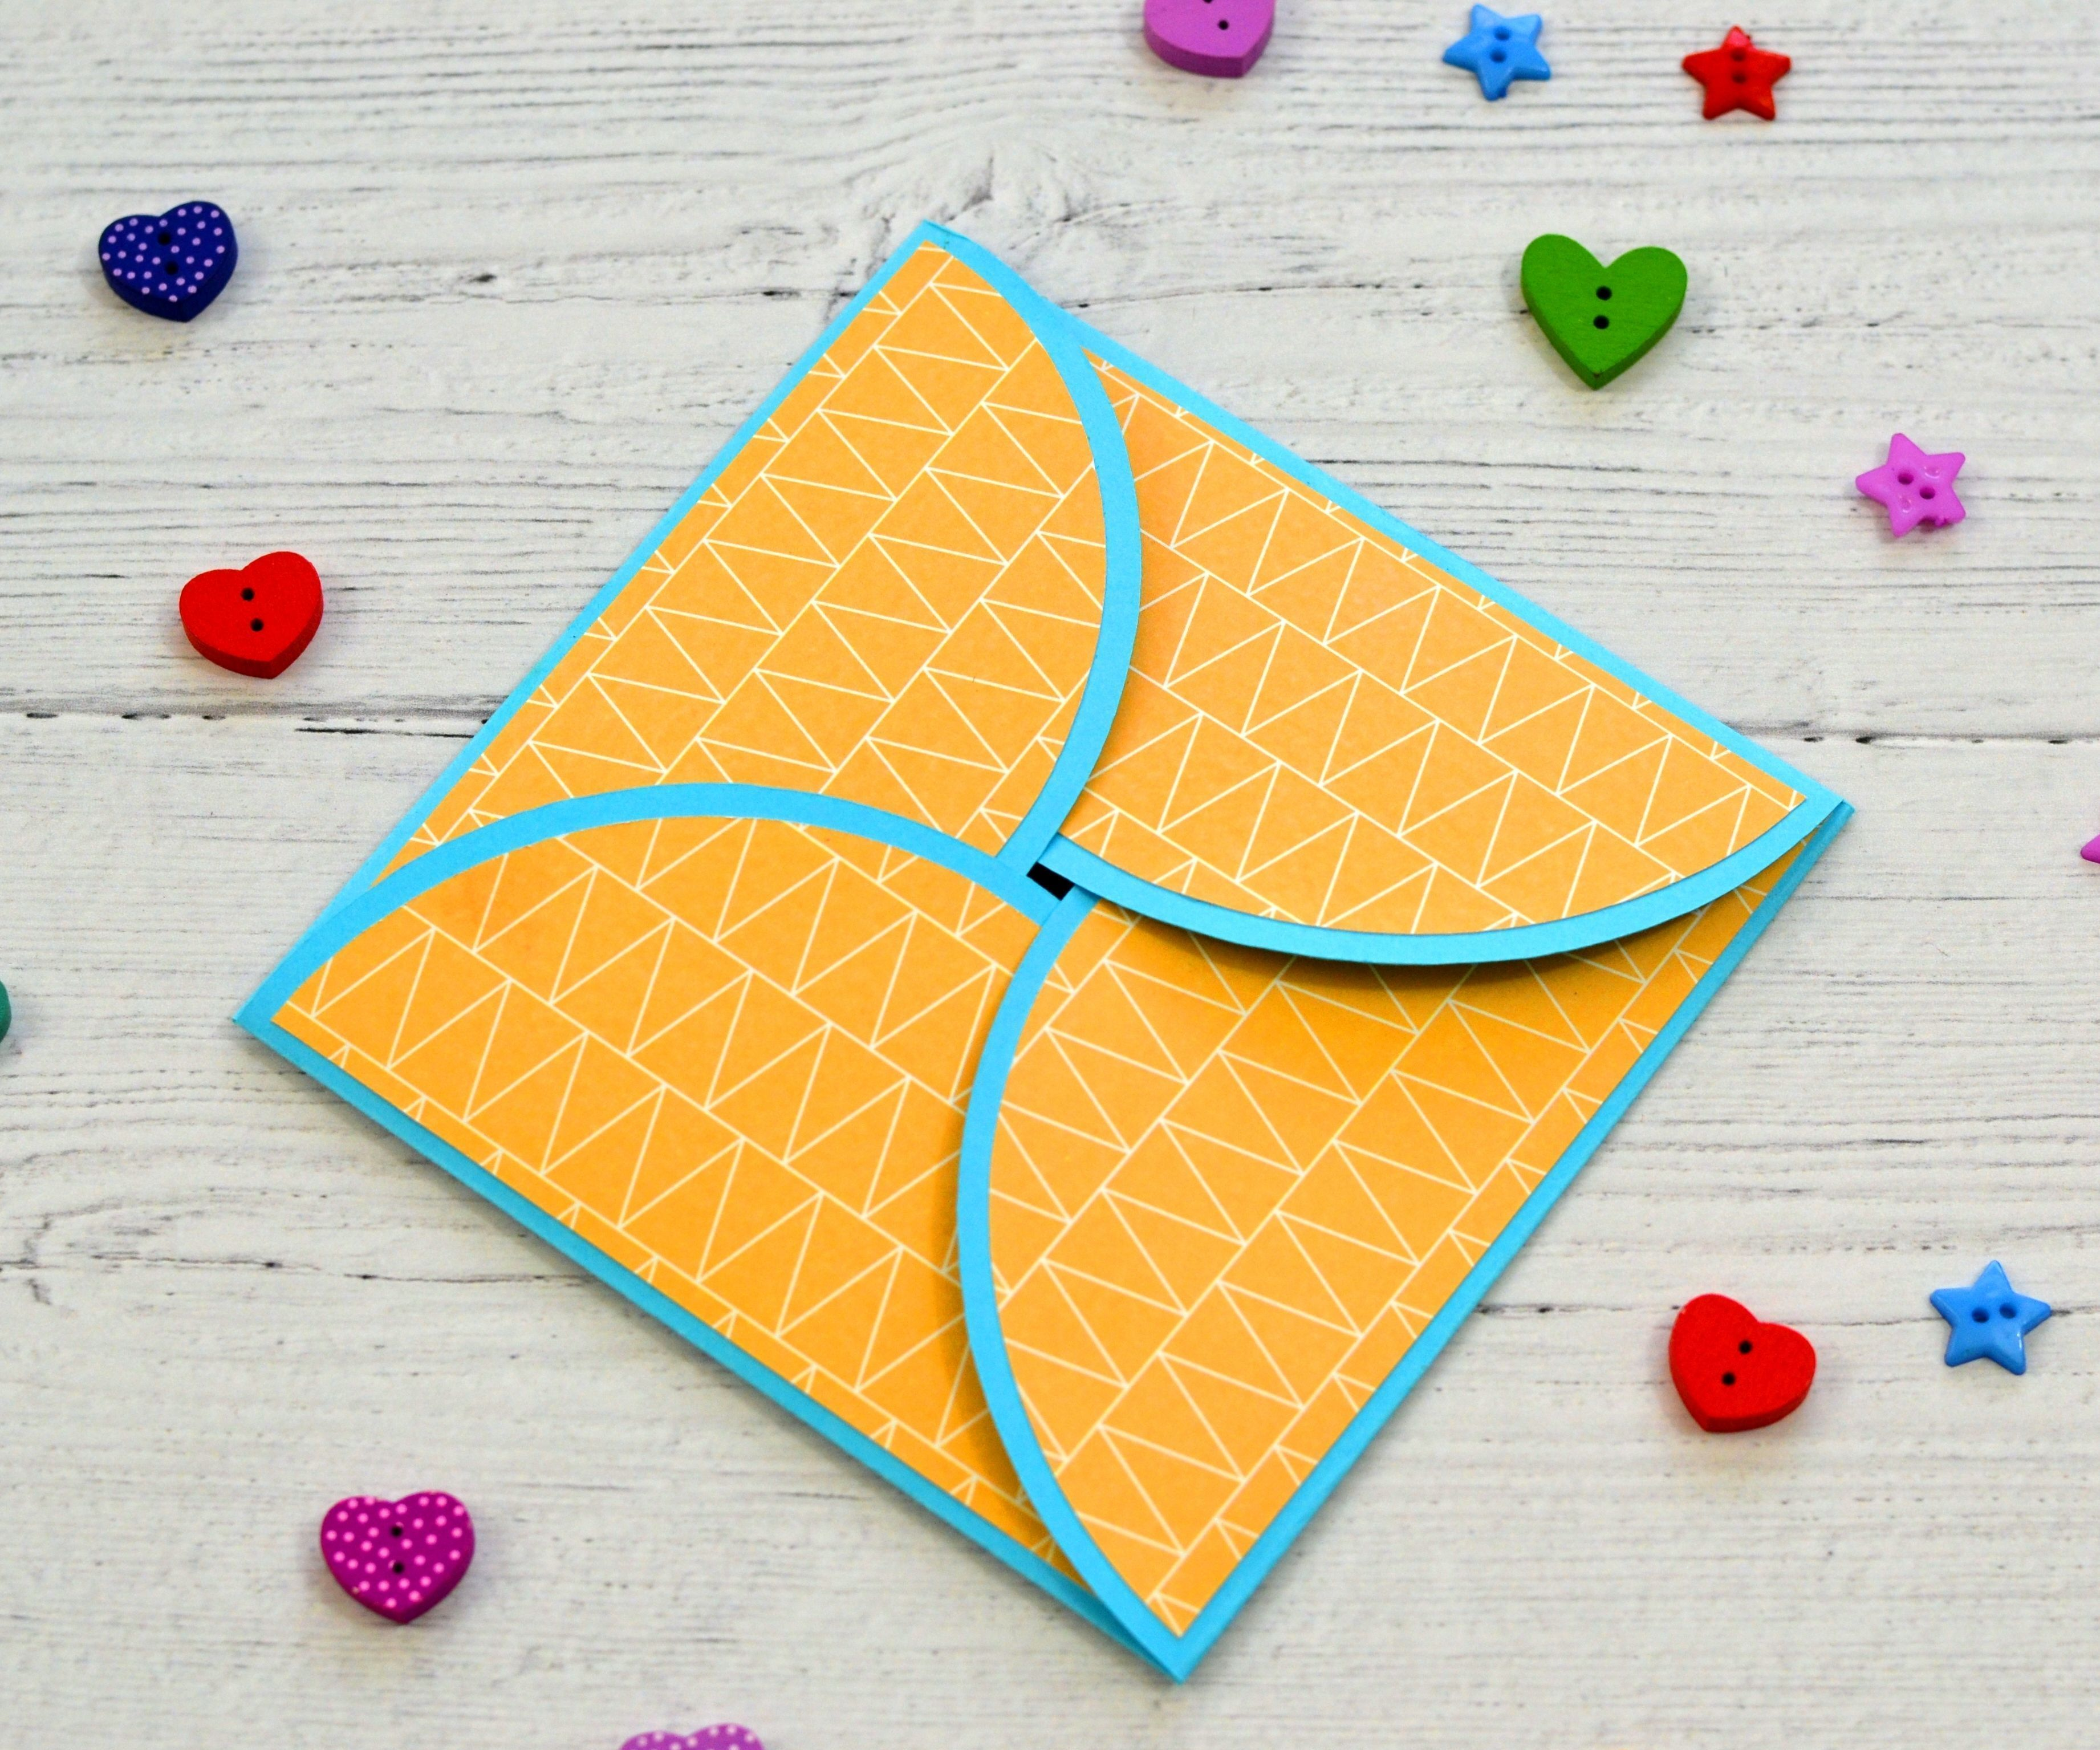 How to Make Cards With Paper | Cricut Projects for Beginners.